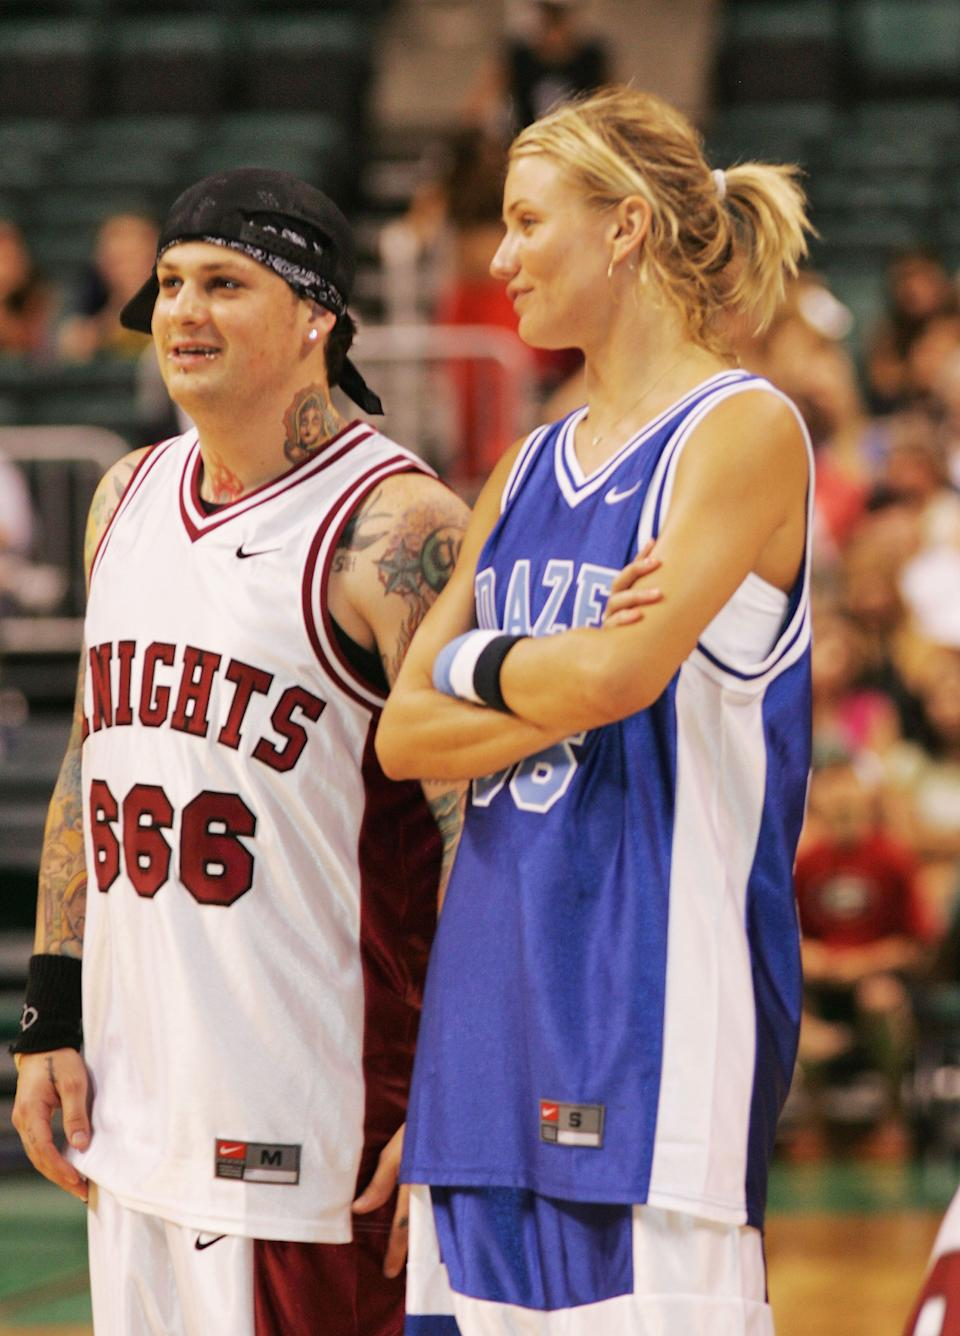 Cameron Diaz and husband, Benji Madden look amazing in basketball outfits as they are ready for the game